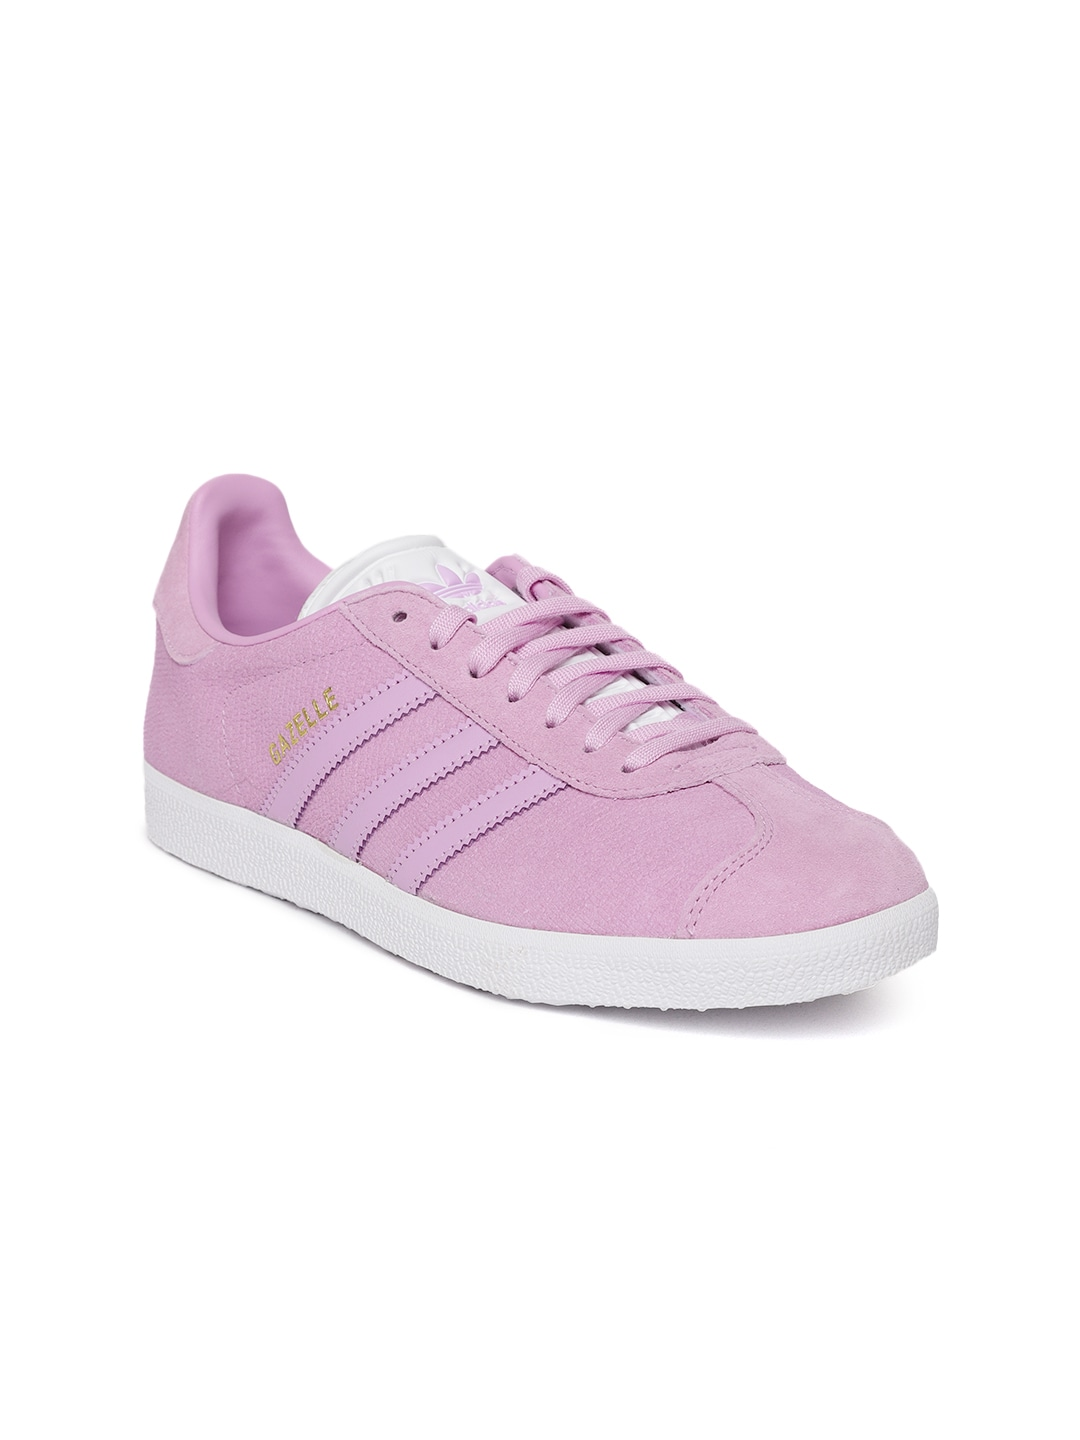 Online Buy Sneakers In India Adidas Myntra Gazelle 0Sq7wC 6d45b9c22